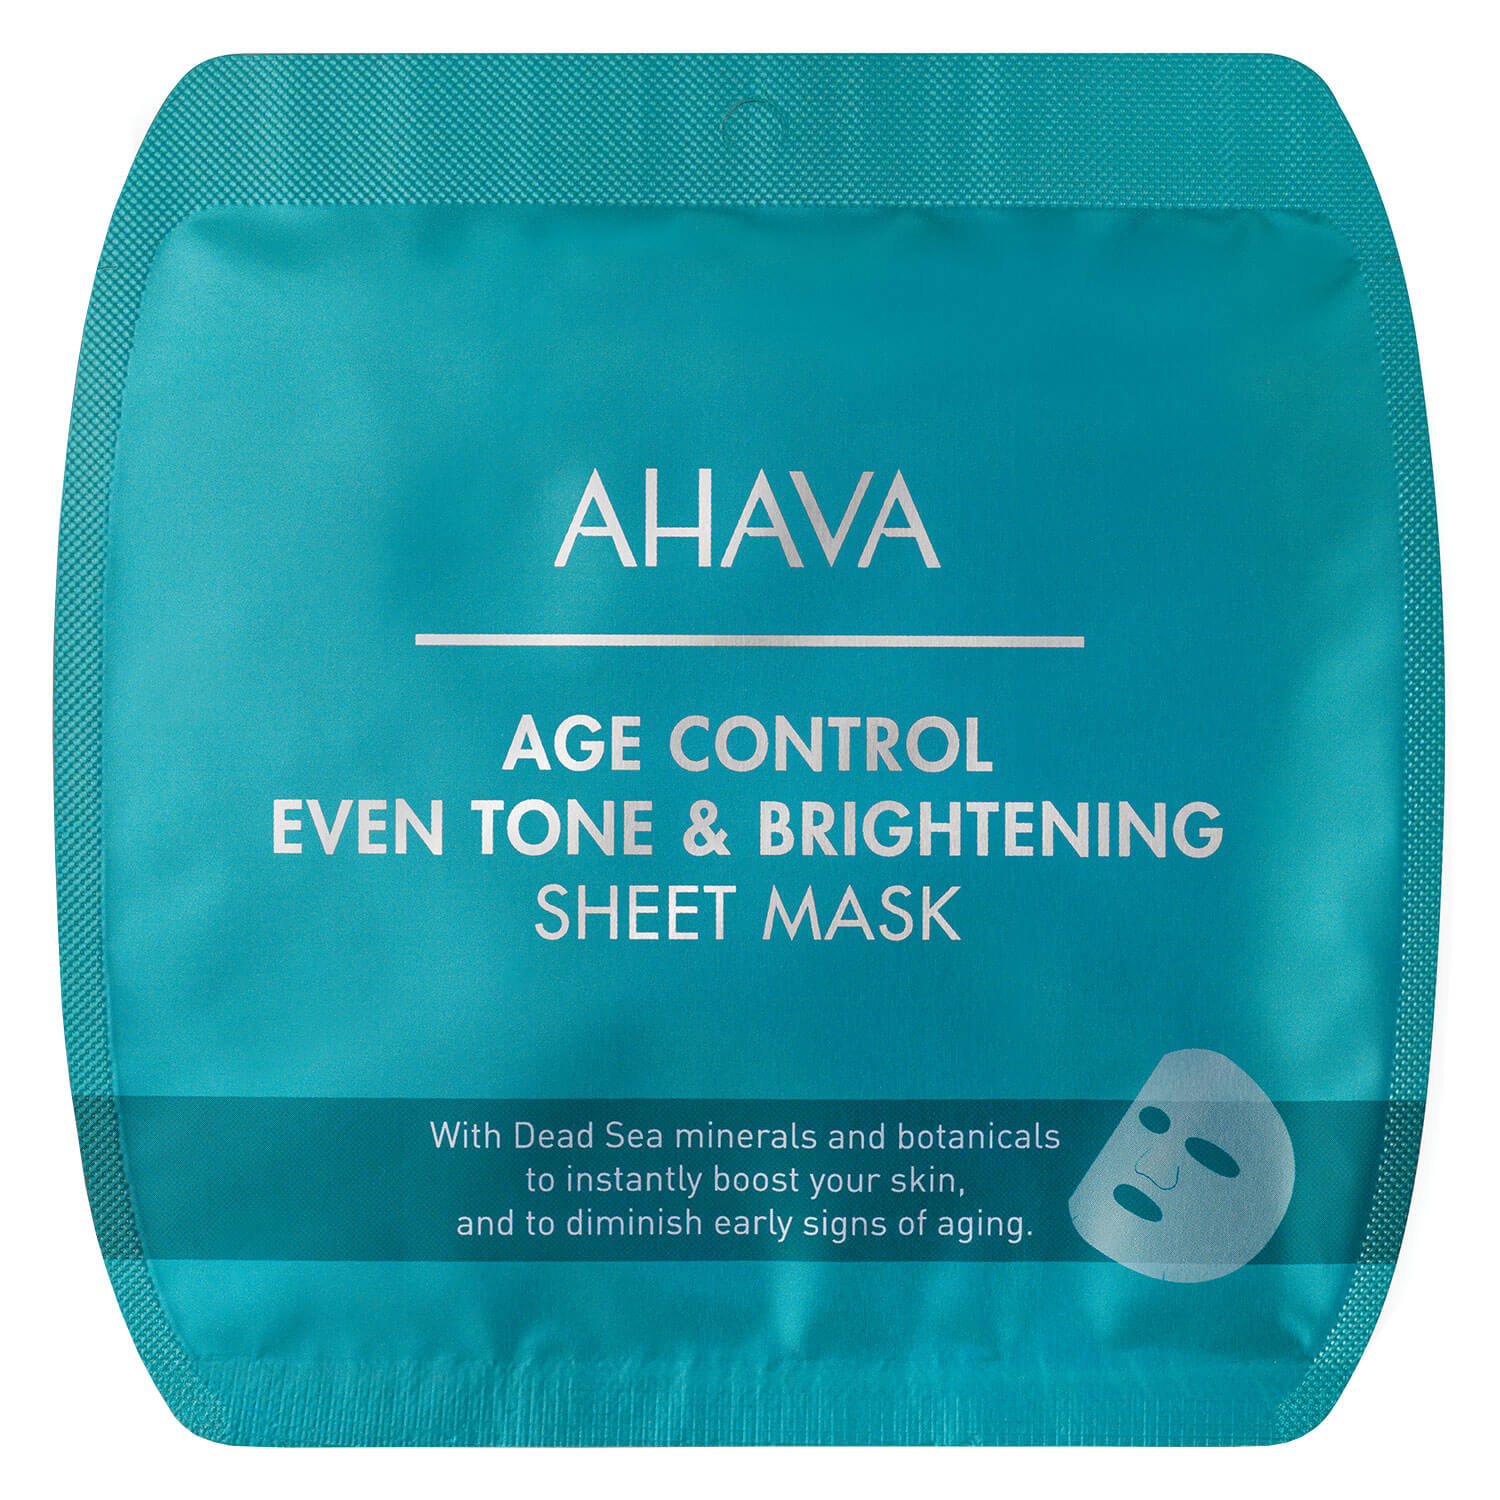 DeadSea Minerals - Age Control Even Tone & Brightening Sheet Mask